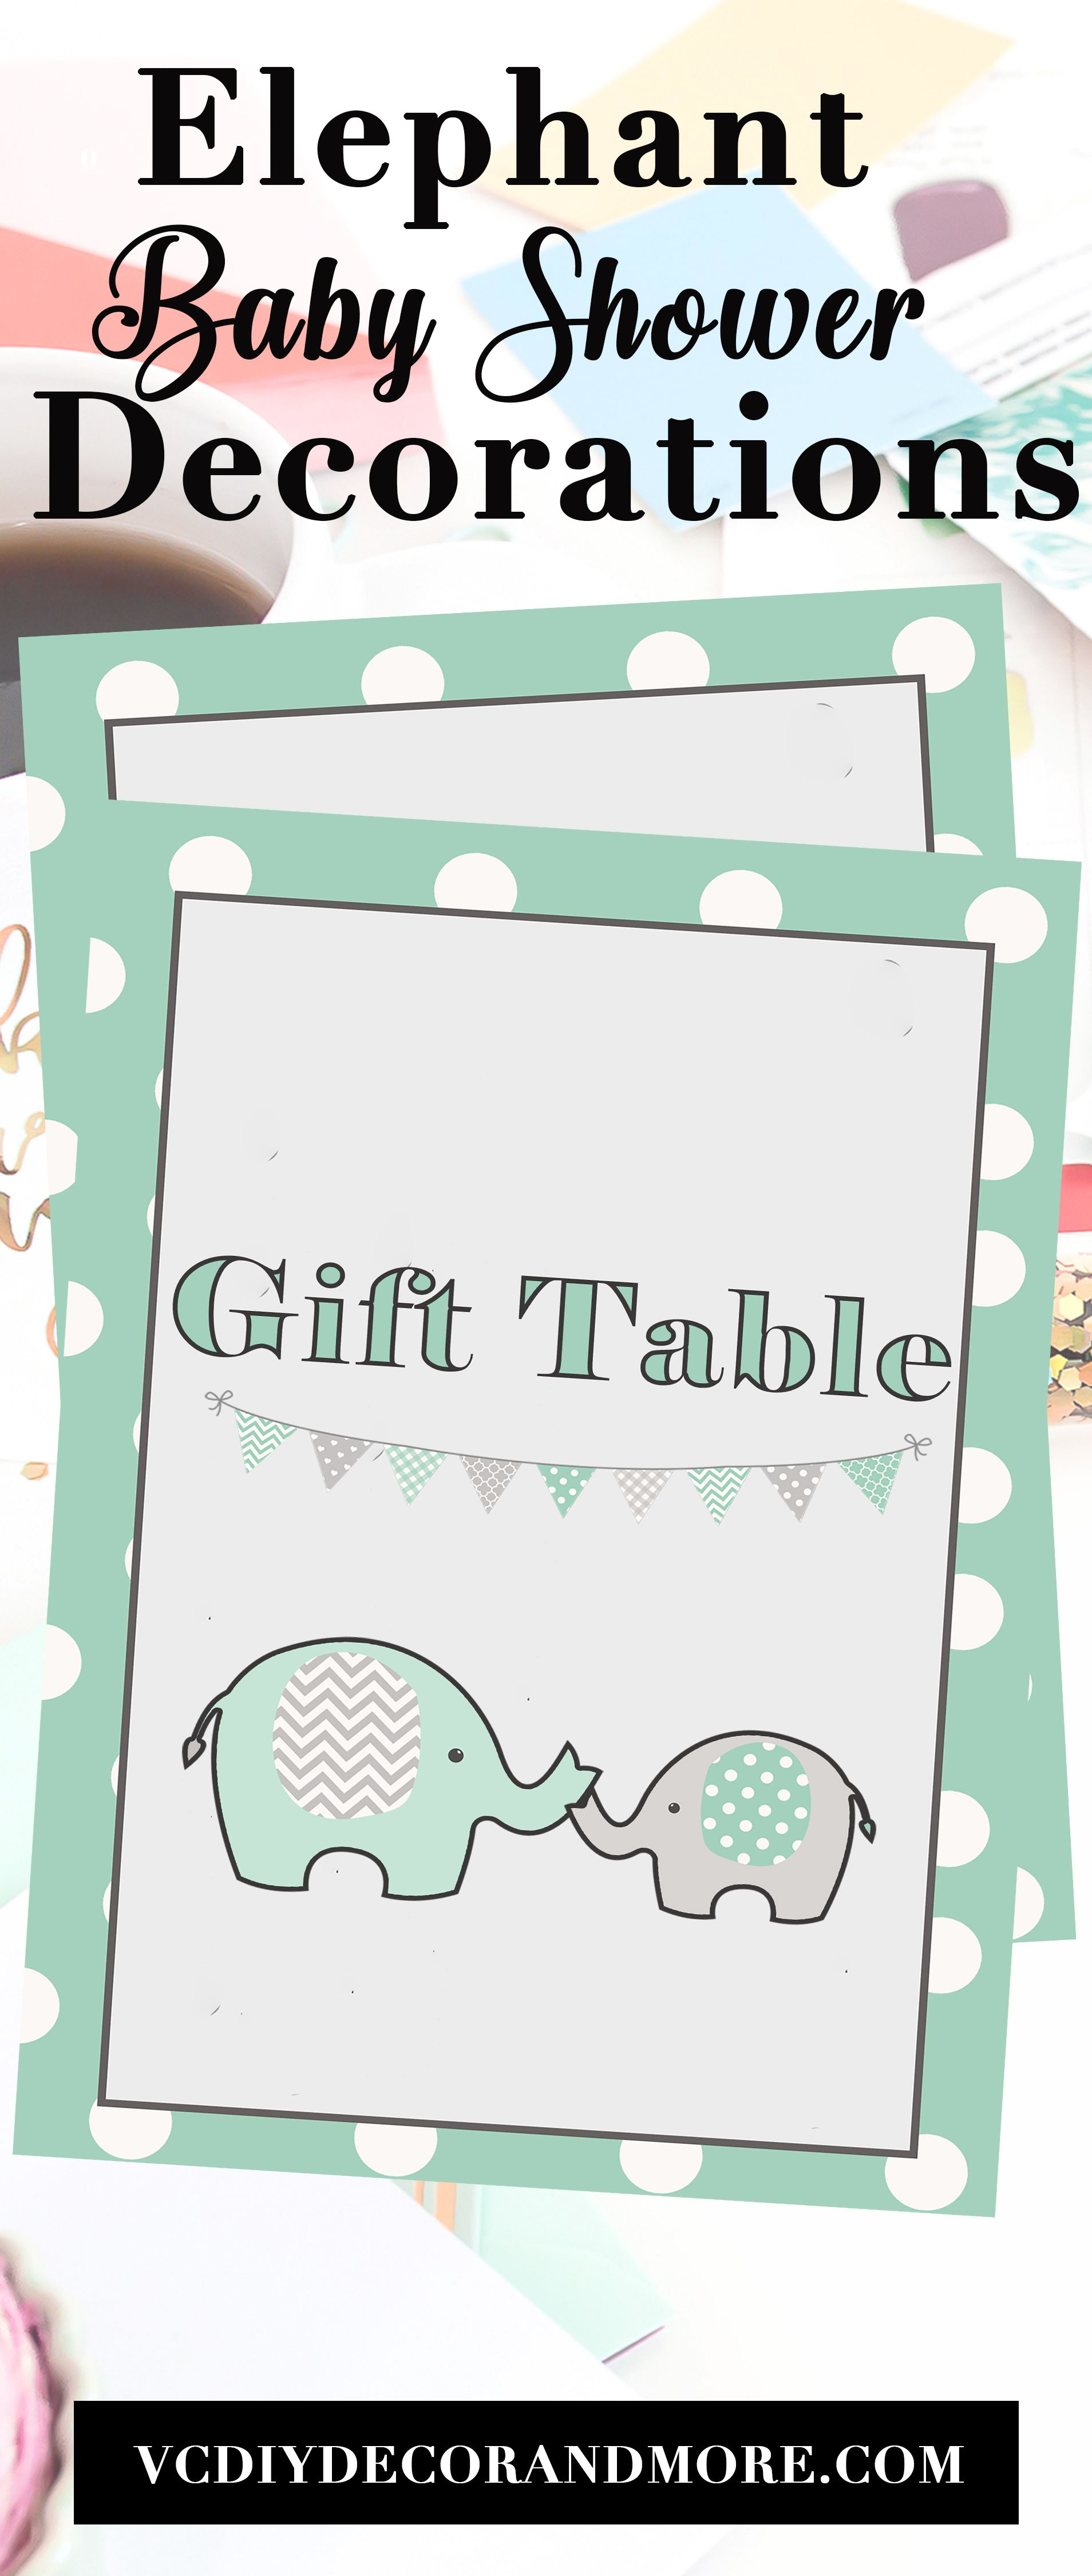 Elephant Baby Shower Decorations Sign For A Boy Baby